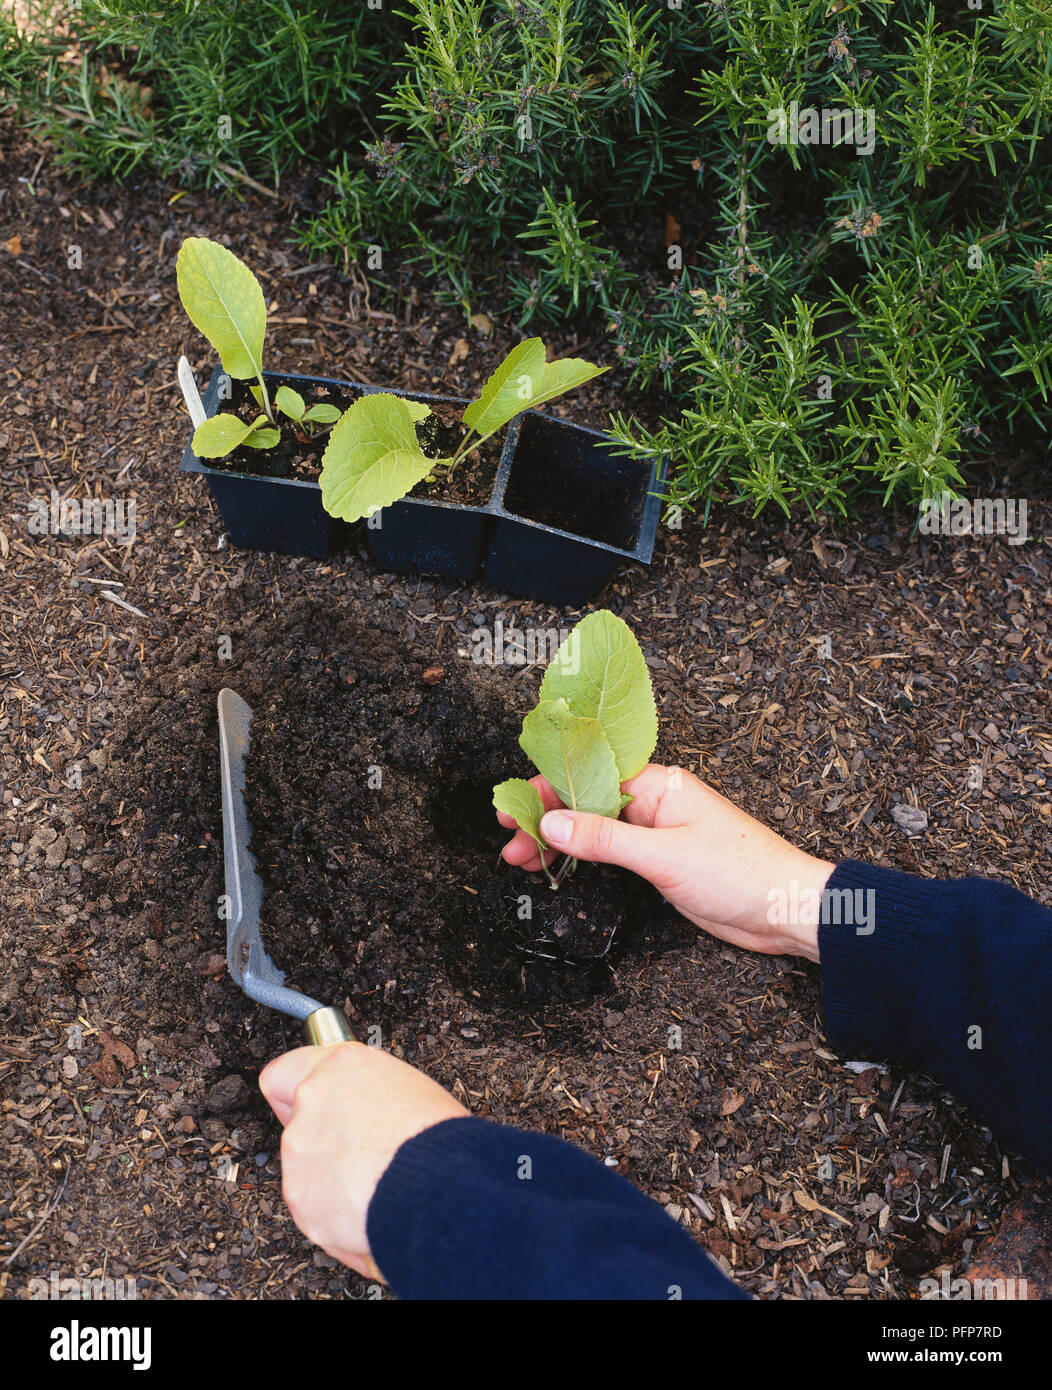 Using trowel to plant Armoracia rusticana, syn. Cochlearia armoracia (horseradish) seedling in compost and soil next to lavender - Stock Image